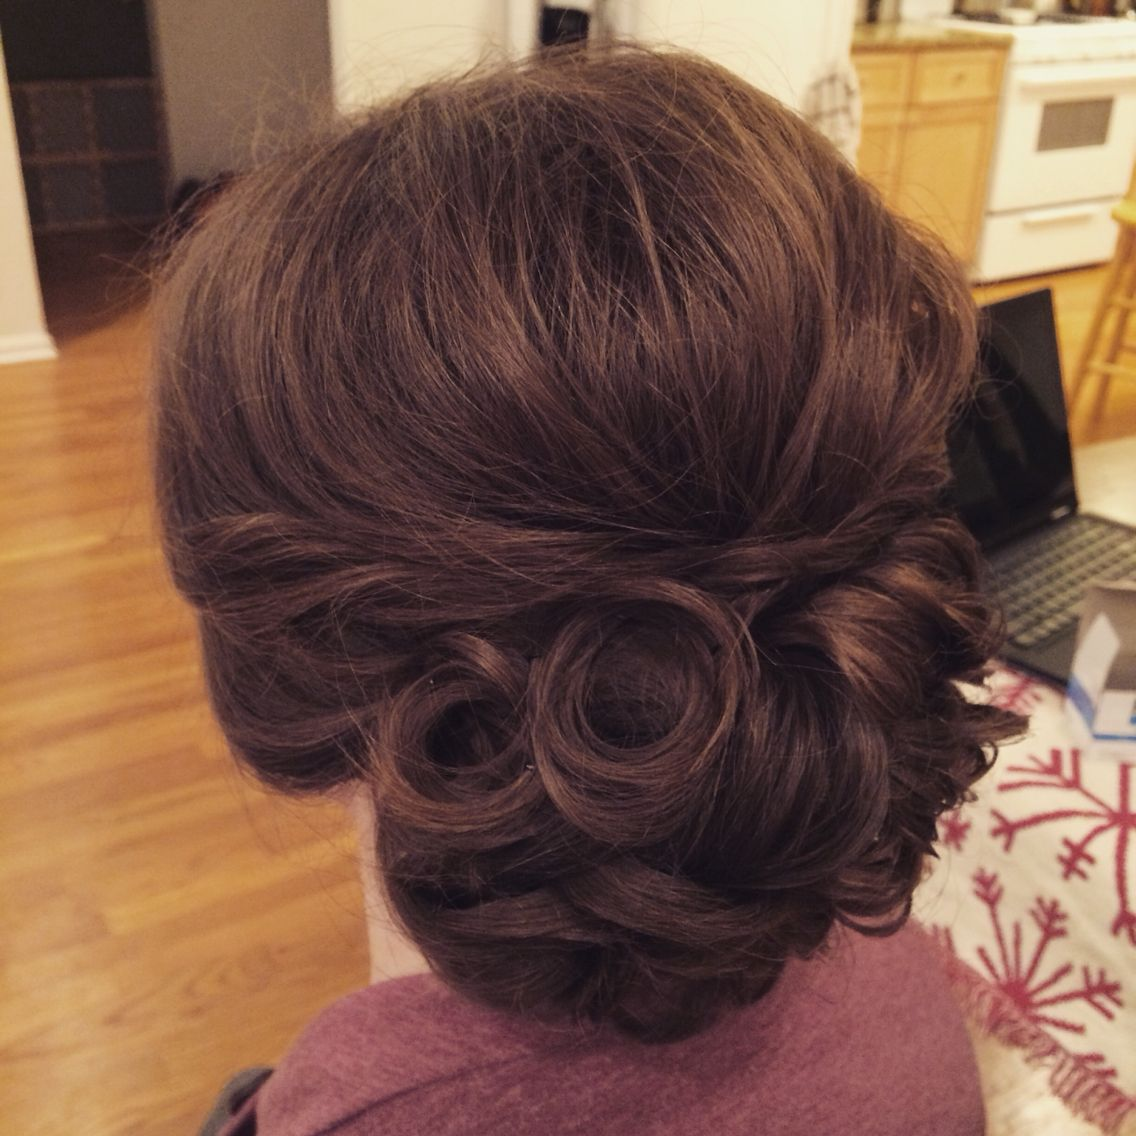 low messy bun. loose curls pinned. low bun. romantic updo. bridal